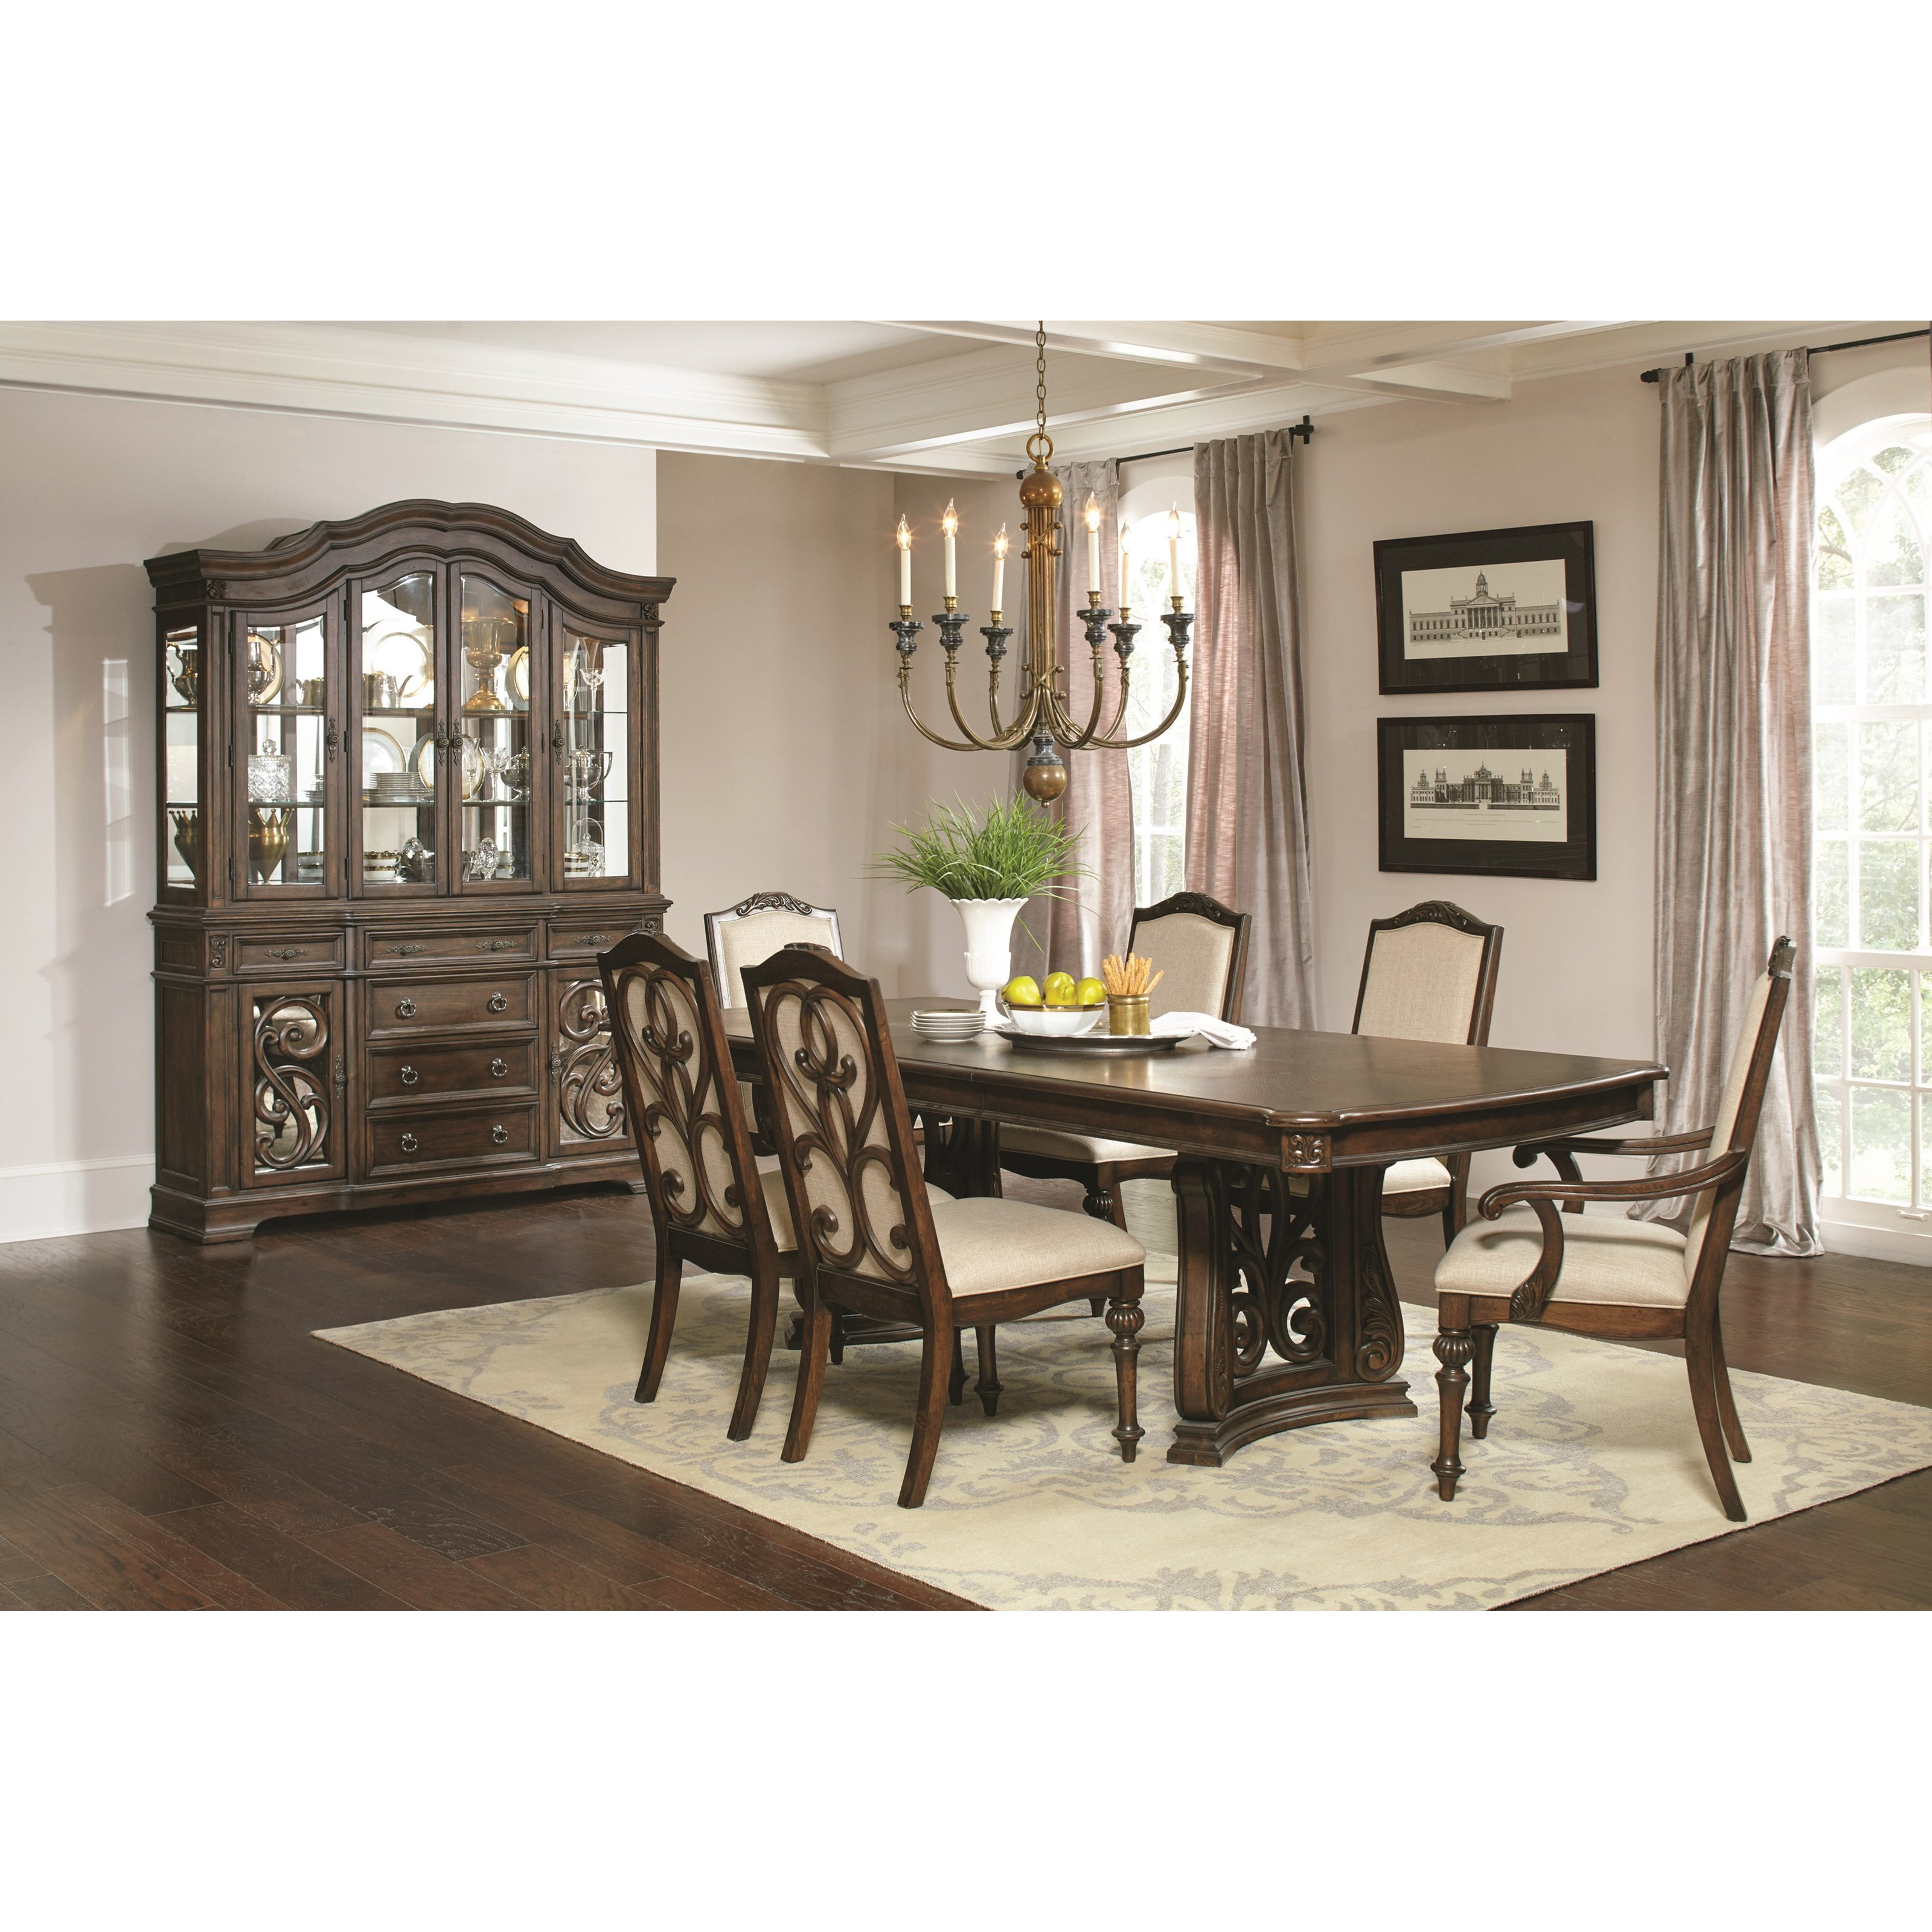 coaster ilana formal dining room group del sol furniture formal rh delsolfurniture com pictures of decorated formal dining rooms